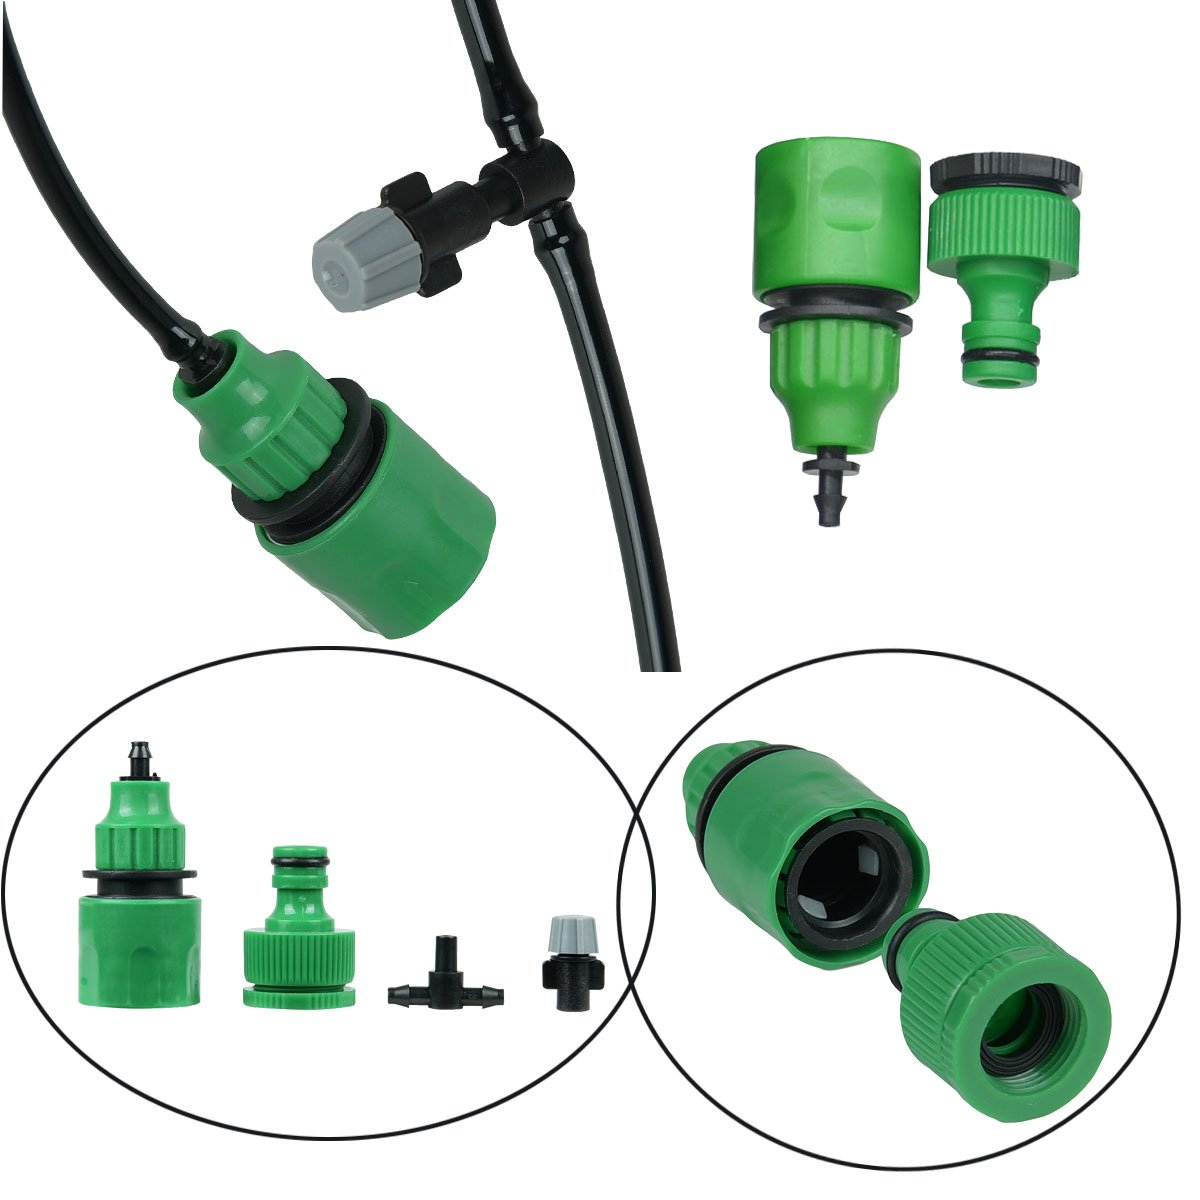 82FT Mist Cooling System with 25PCS Plastic Mist Nozzles For Outdoor Lawn Patio Garden Greenhouse by Forfuture-go (Image #9)